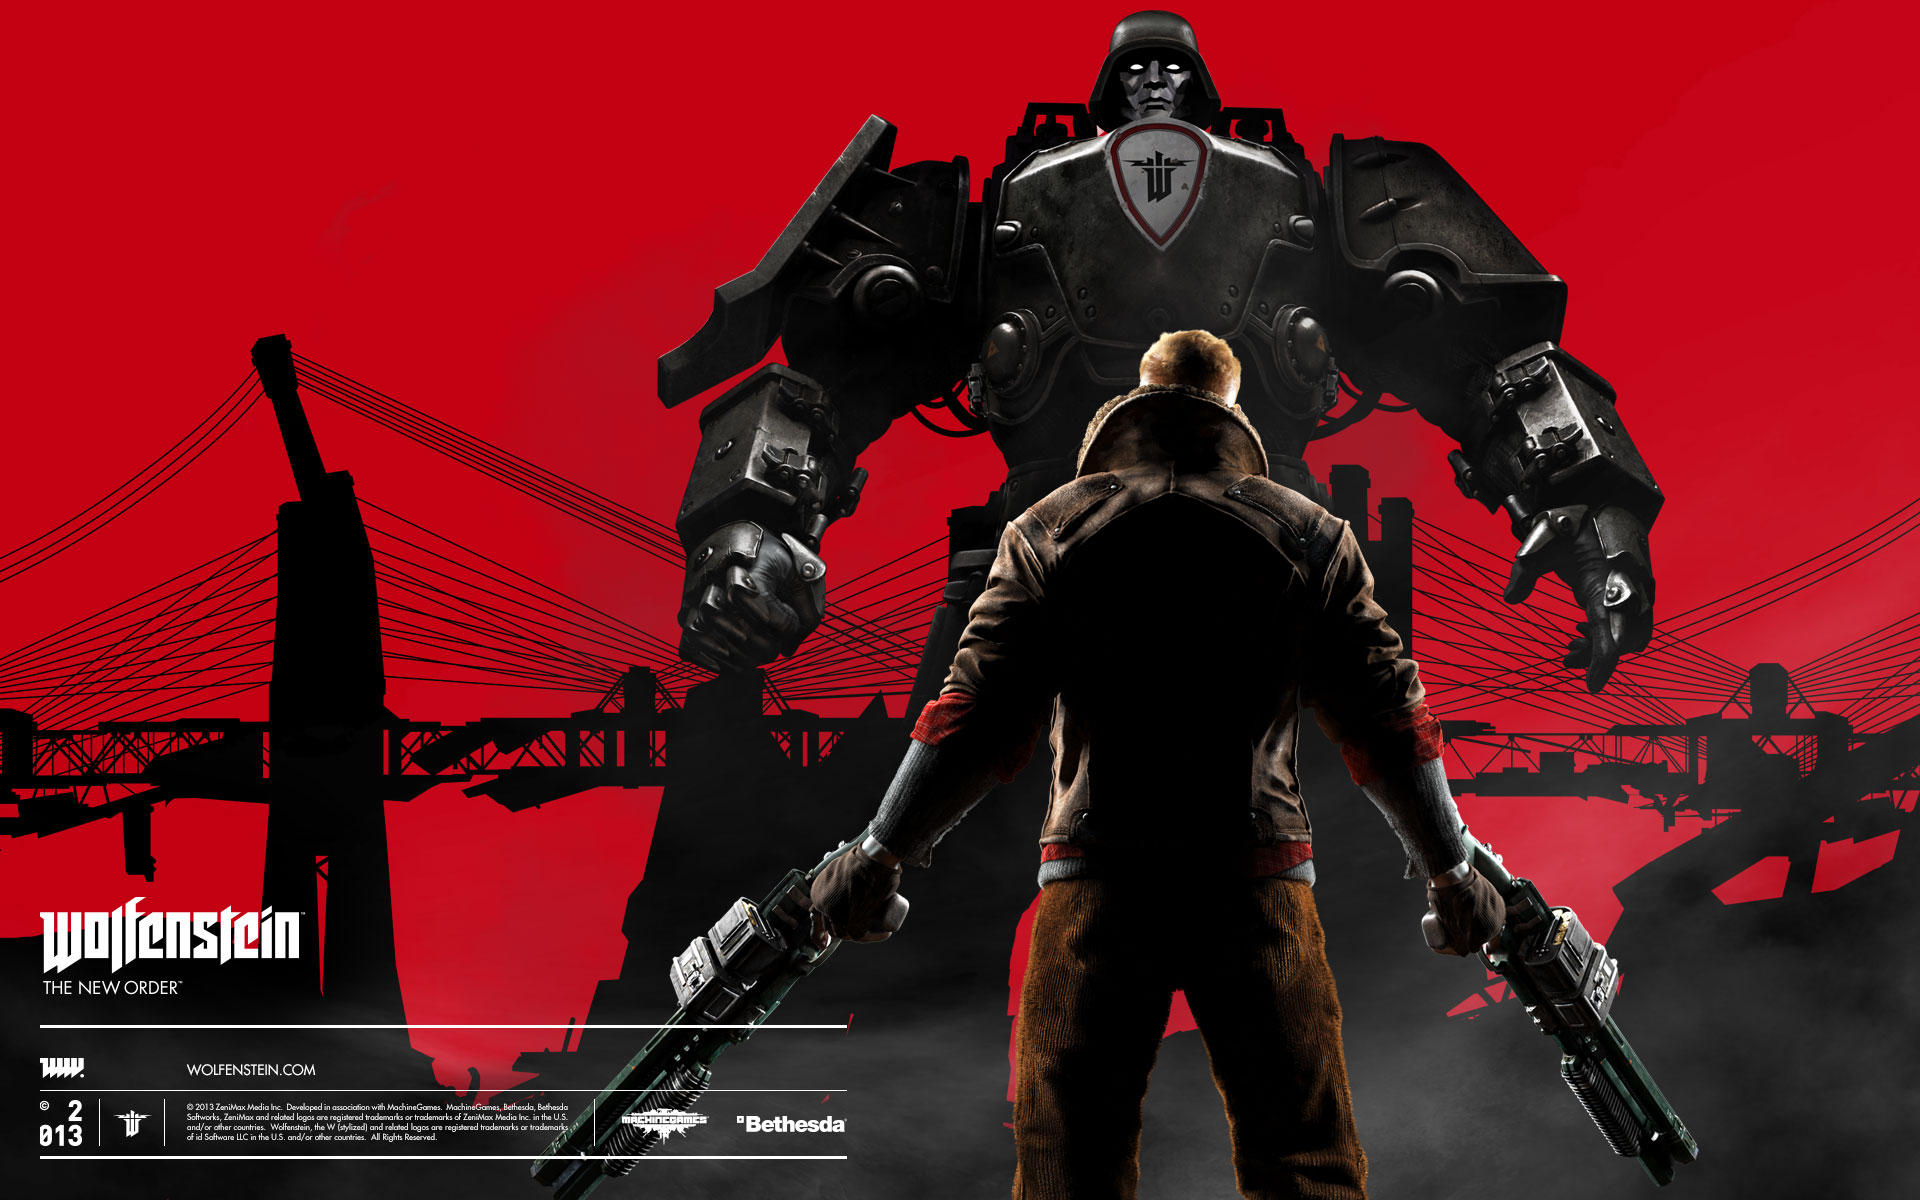 HD Wallpapers 2014 Wolfenstein The New Order